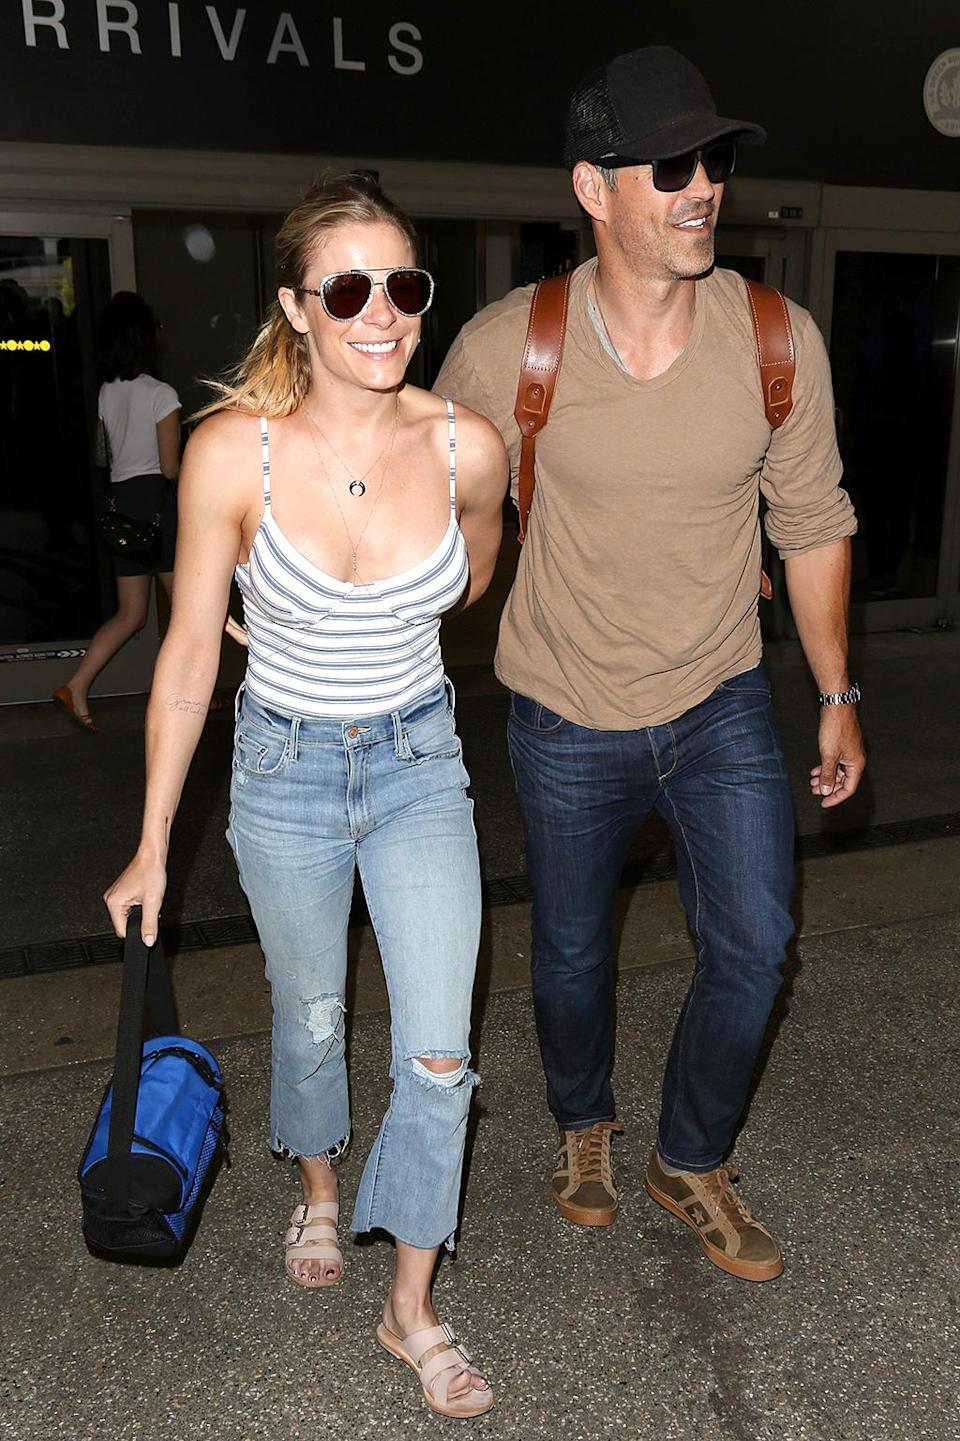 """<p>The couple came in for a landing at Los Angeles International Airport following a tropical vacation to celebrate their sixth wedding anniversary. Both commemorated the occasion with <a rel=""""nofollow"""" href=""""https://www.yahoo.com/celebrity/leann-rimes-pens-touching-tribute-224800976.html"""" data-ylk=""""slk:gushy posts on social media;outcm:mb_qualified_link;_E:mb_qualified_link;ct:story;"""" class=""""link rapid-noclick-resp yahoo-link"""">gushy posts on social media</a>, natch. (Photo: AKM-GSI) </p>"""